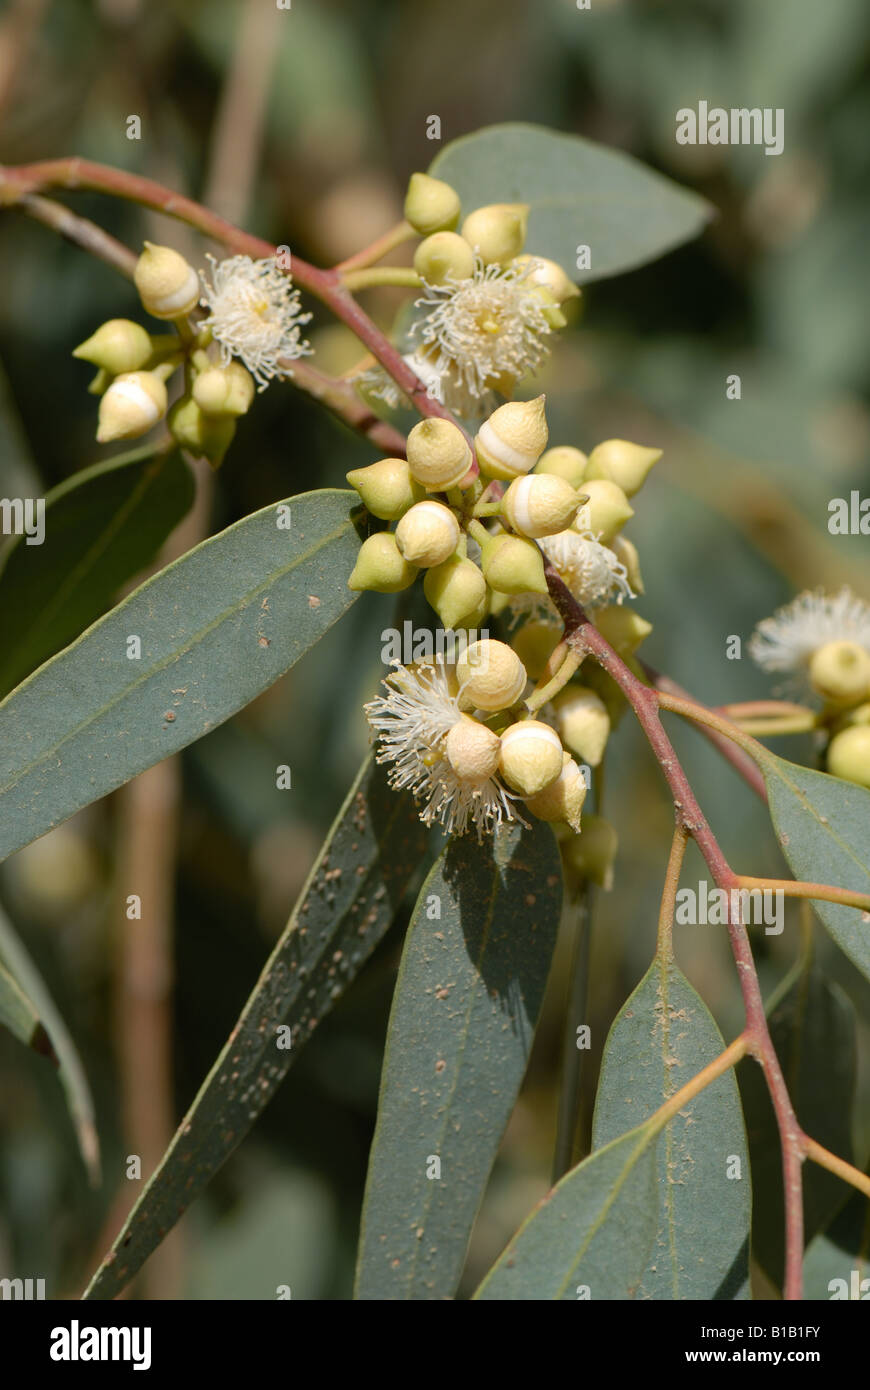 Gum tree Eucalyptus spp flowers stamens and buds with fused petals Crete - Stock Image